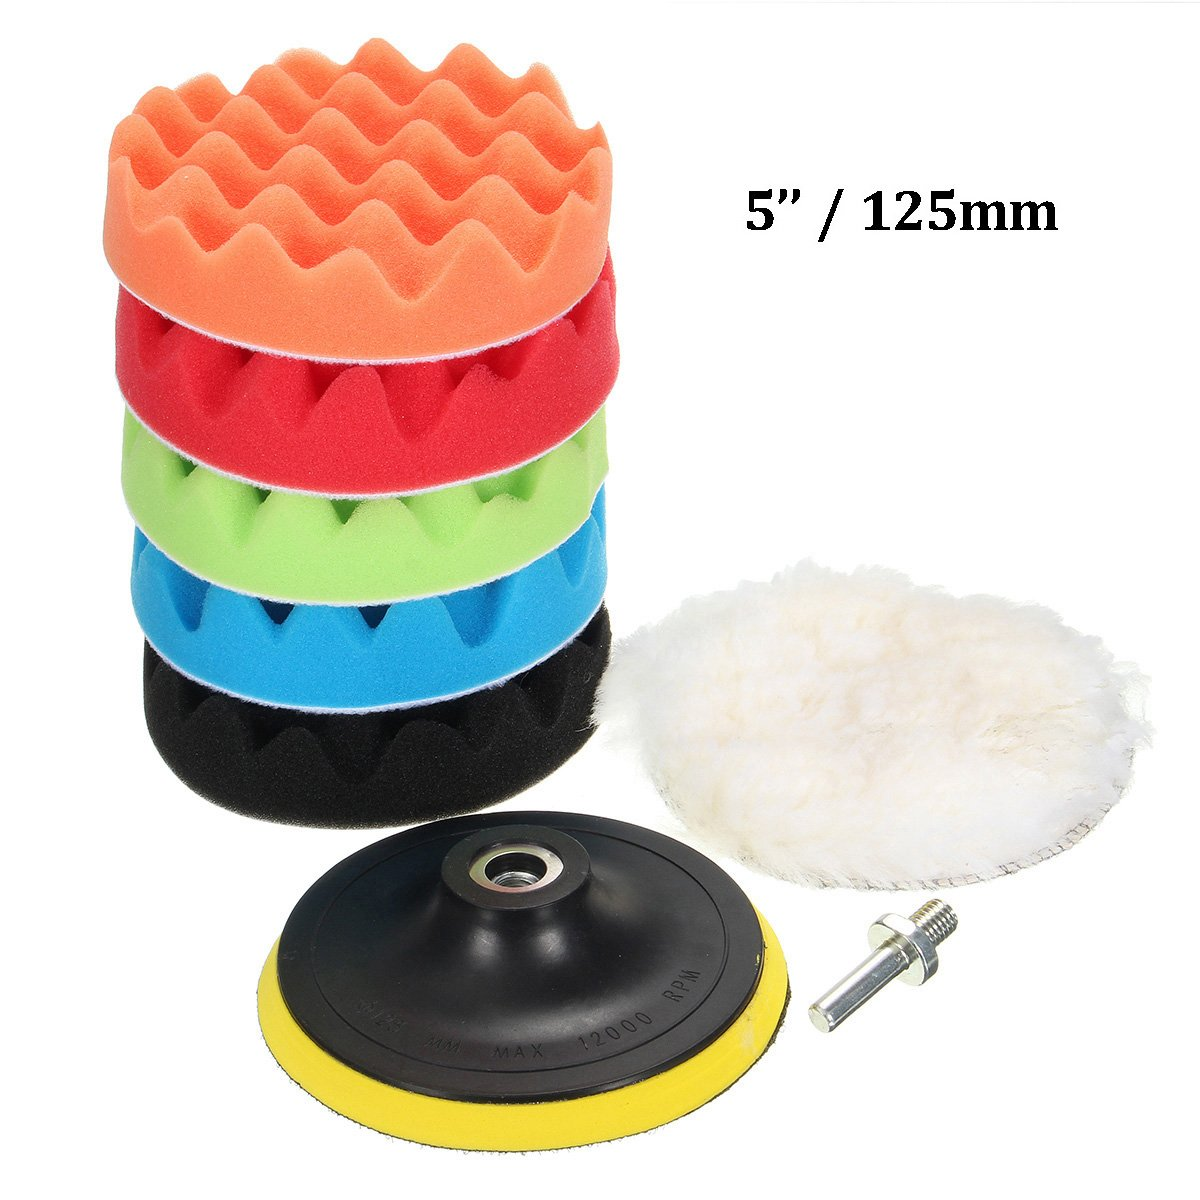 MATCC 7Pcs Polishing Pads Various Sizes Sponge Woolen Polishing Waxing Buffing Pads Kits with M14 Drill Adapter (5\')